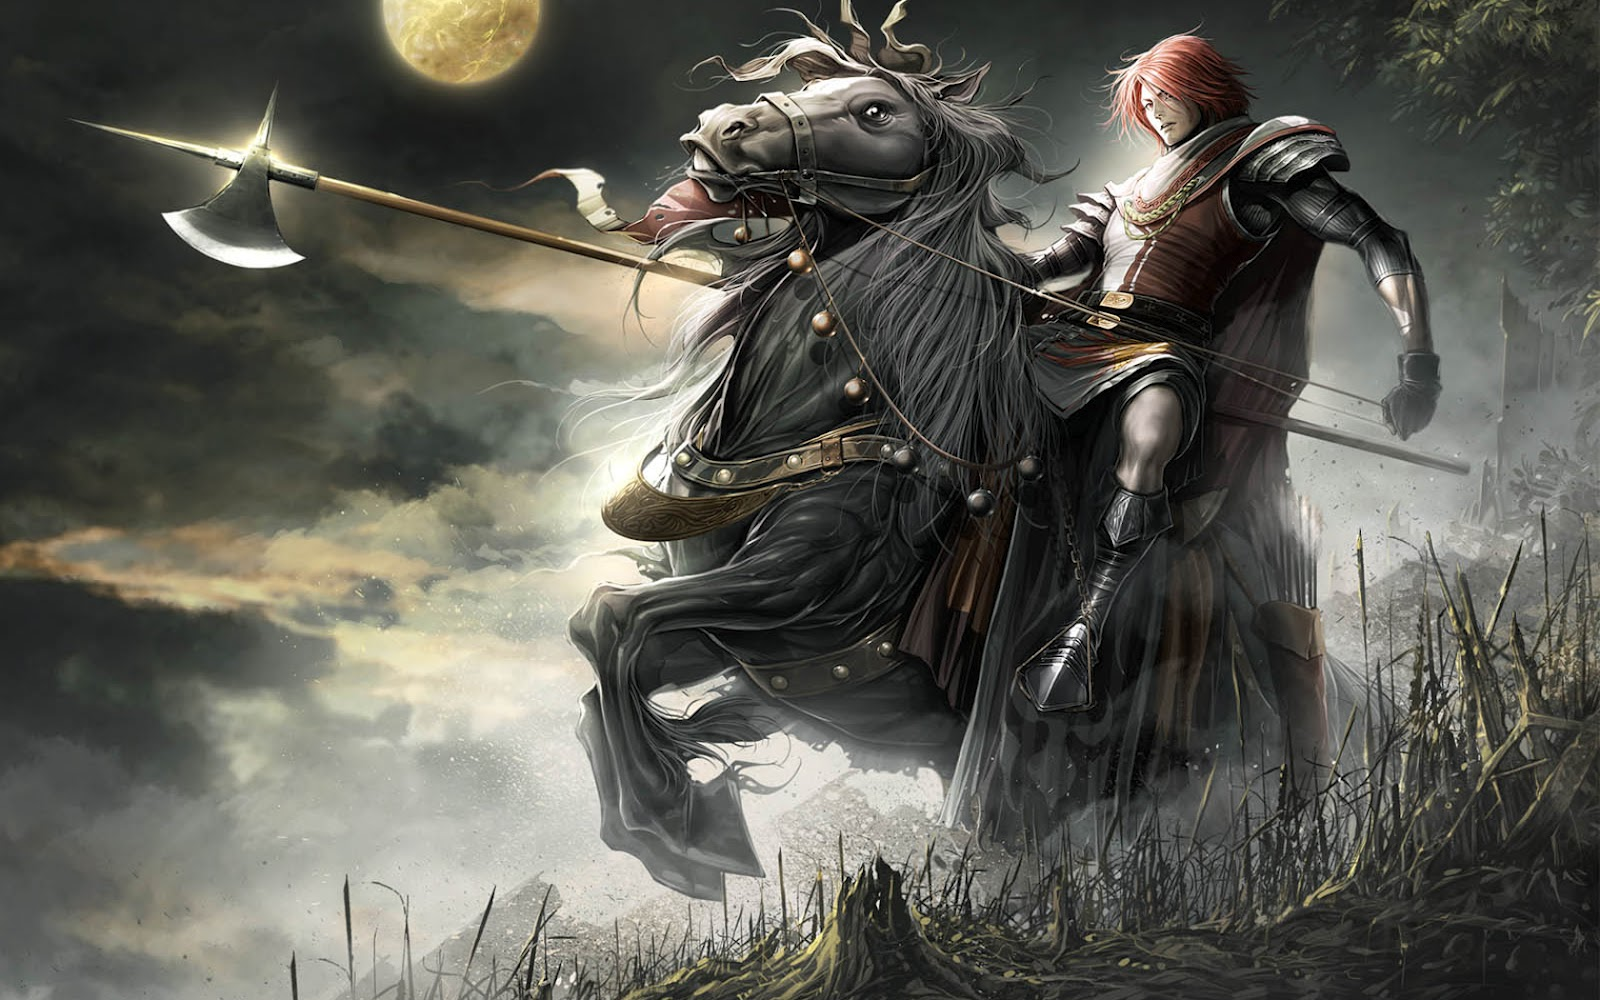 Great   Wallpaper Horse Angel - Animated+king+on+horse+HD+wallpaper  Pic_964926.jpg